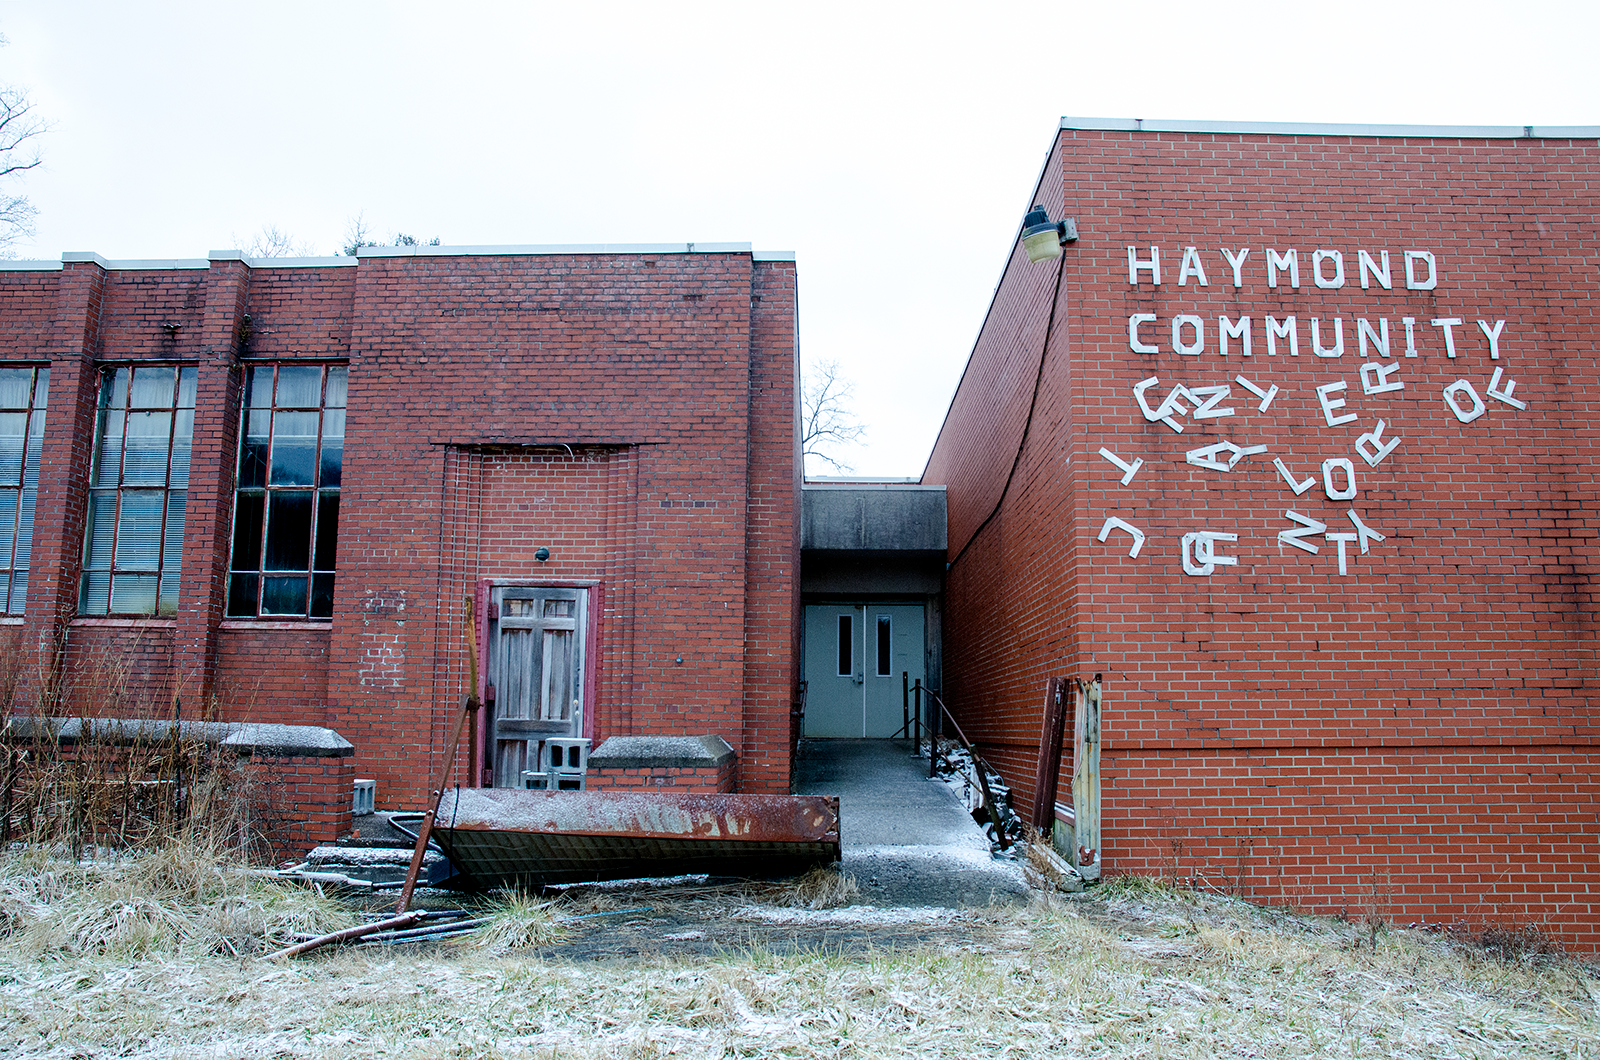 communitycenter1_sm.png